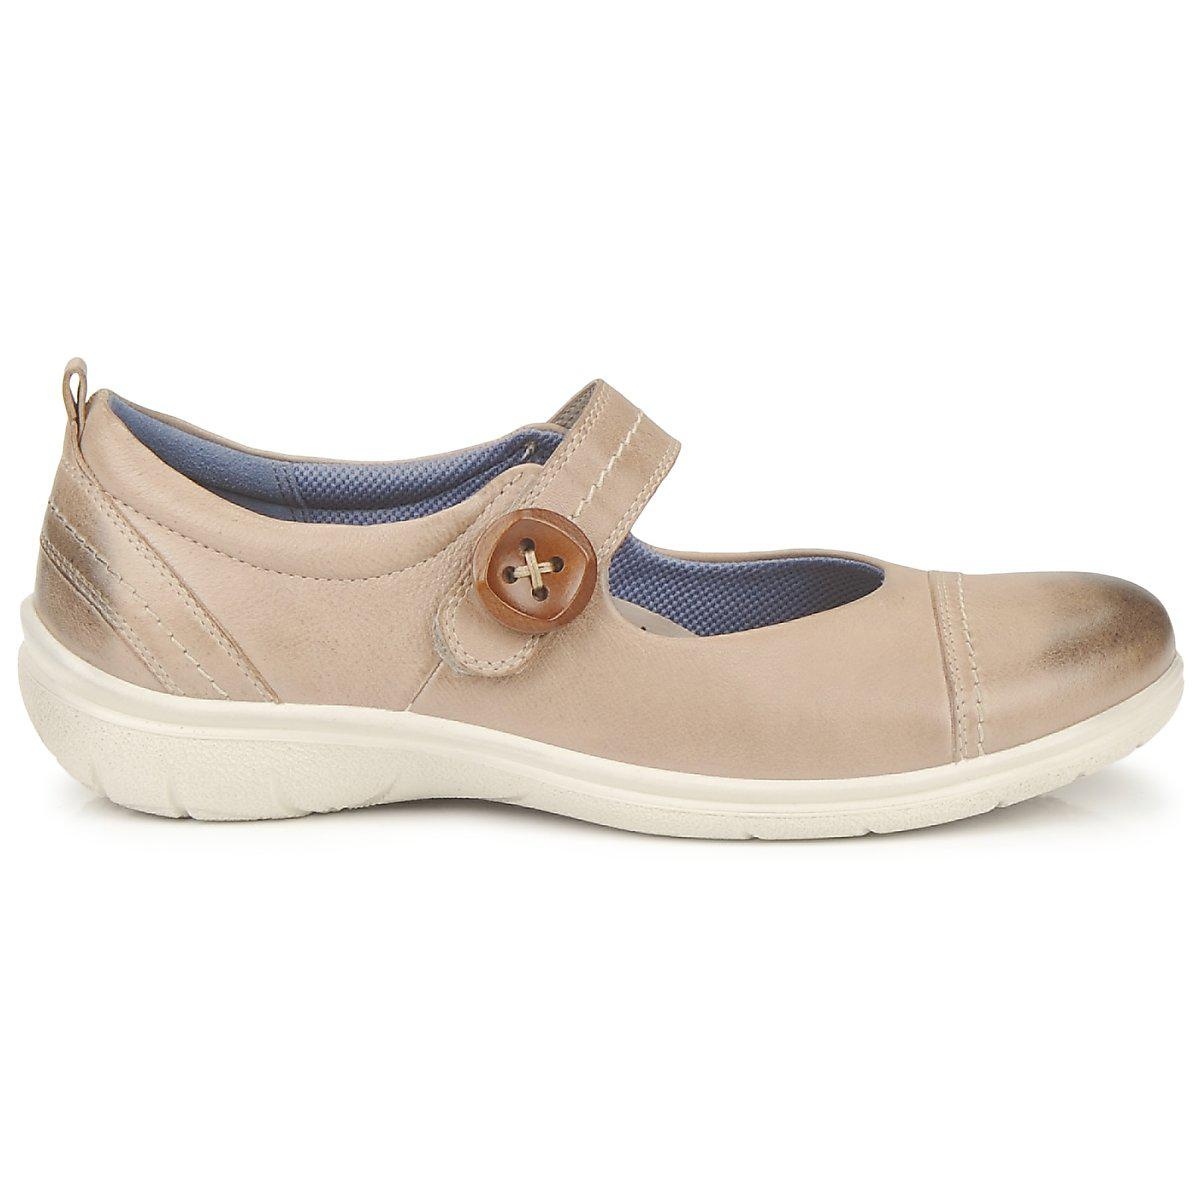 829c6563e787 Ecco Clay Mary Jane Shoes (pumps   Ballerinas) in Natural - Lyst